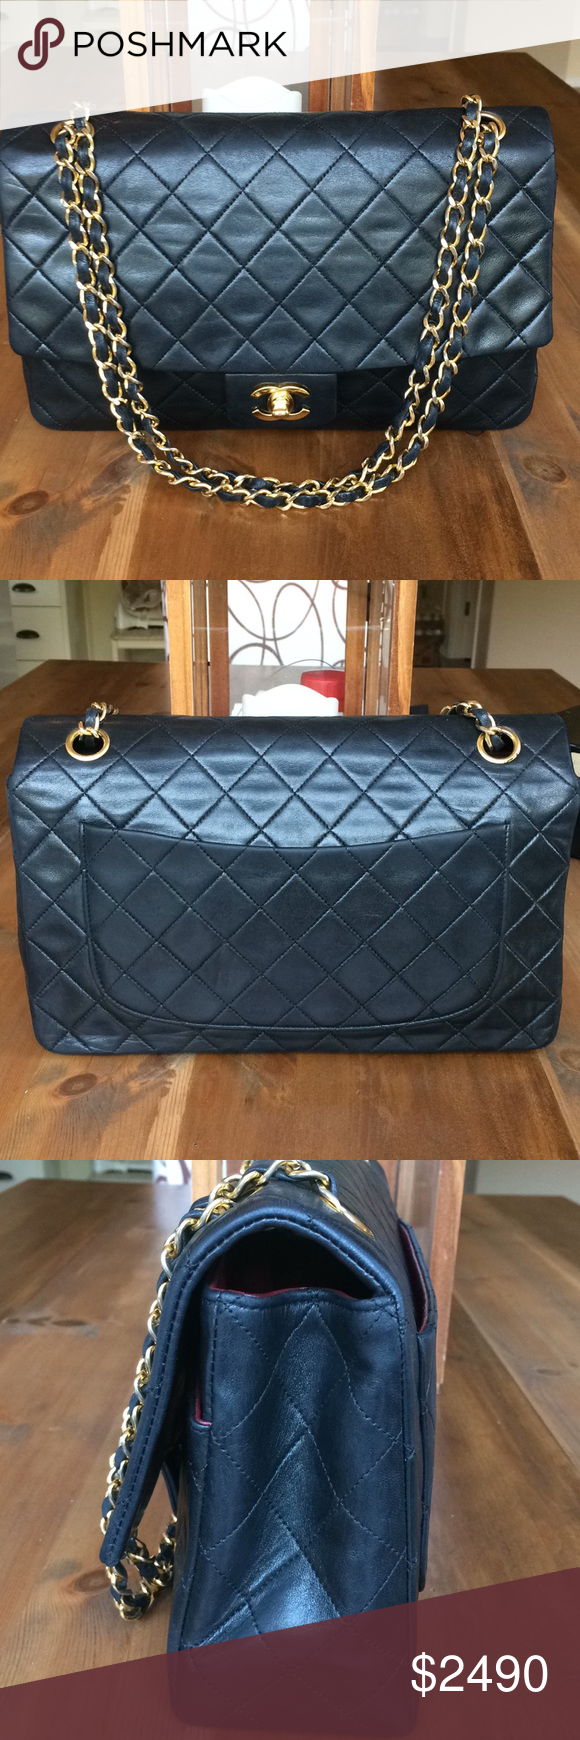 """9e5d73de5bb2 CHANEL Vintage Lambskin Classic 11"""" Jumbo Flap LIMITED EDITION. Just got  back from Complete"""